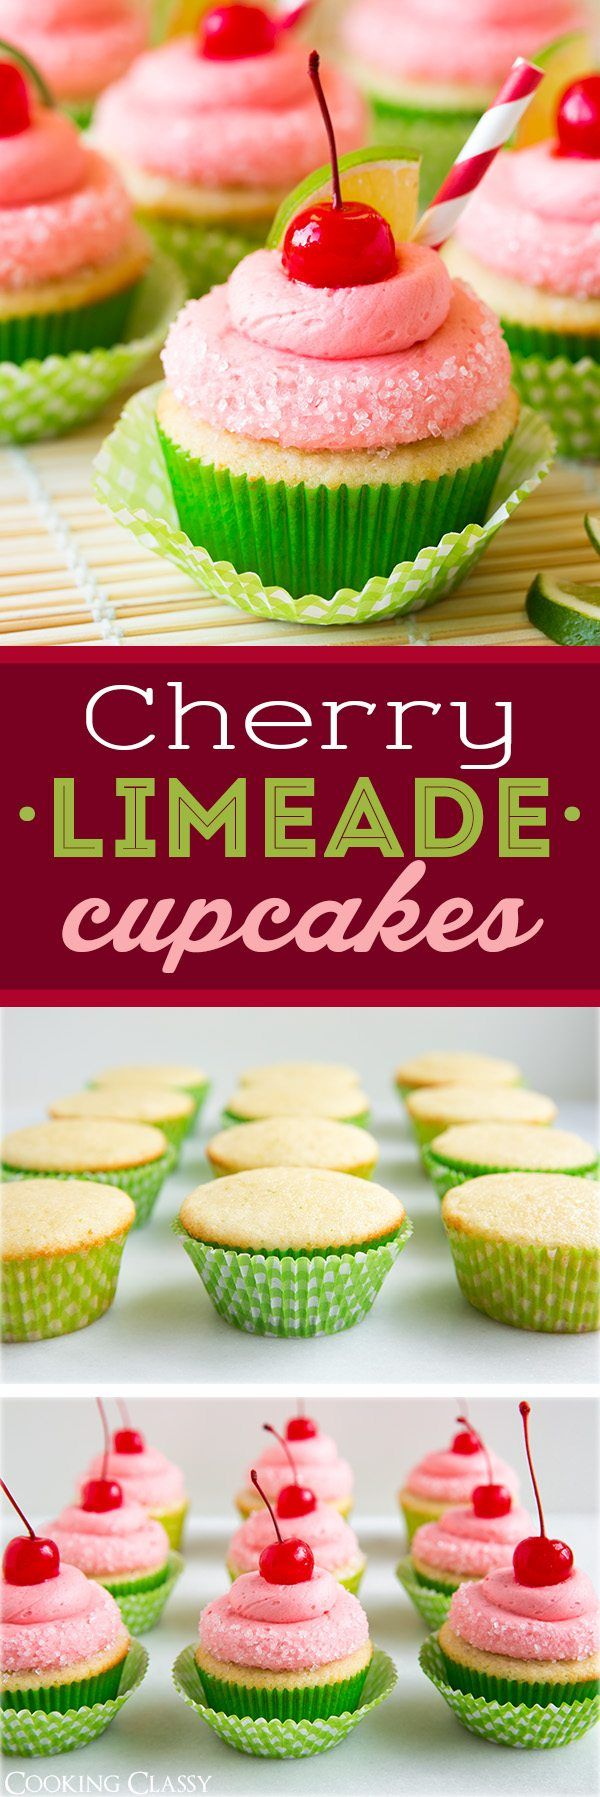 Cherry Limeade Cupcakes   Cooking Classy